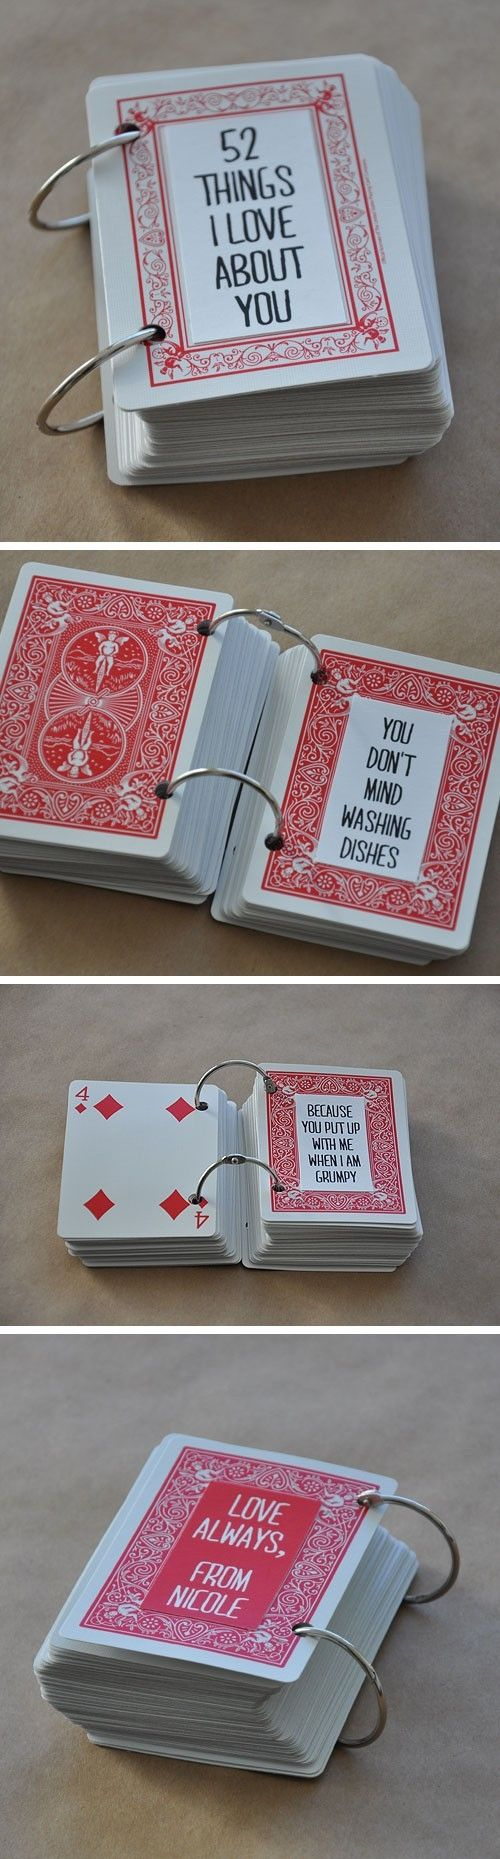 52 reasons why i love you with playing cards! cute cute.